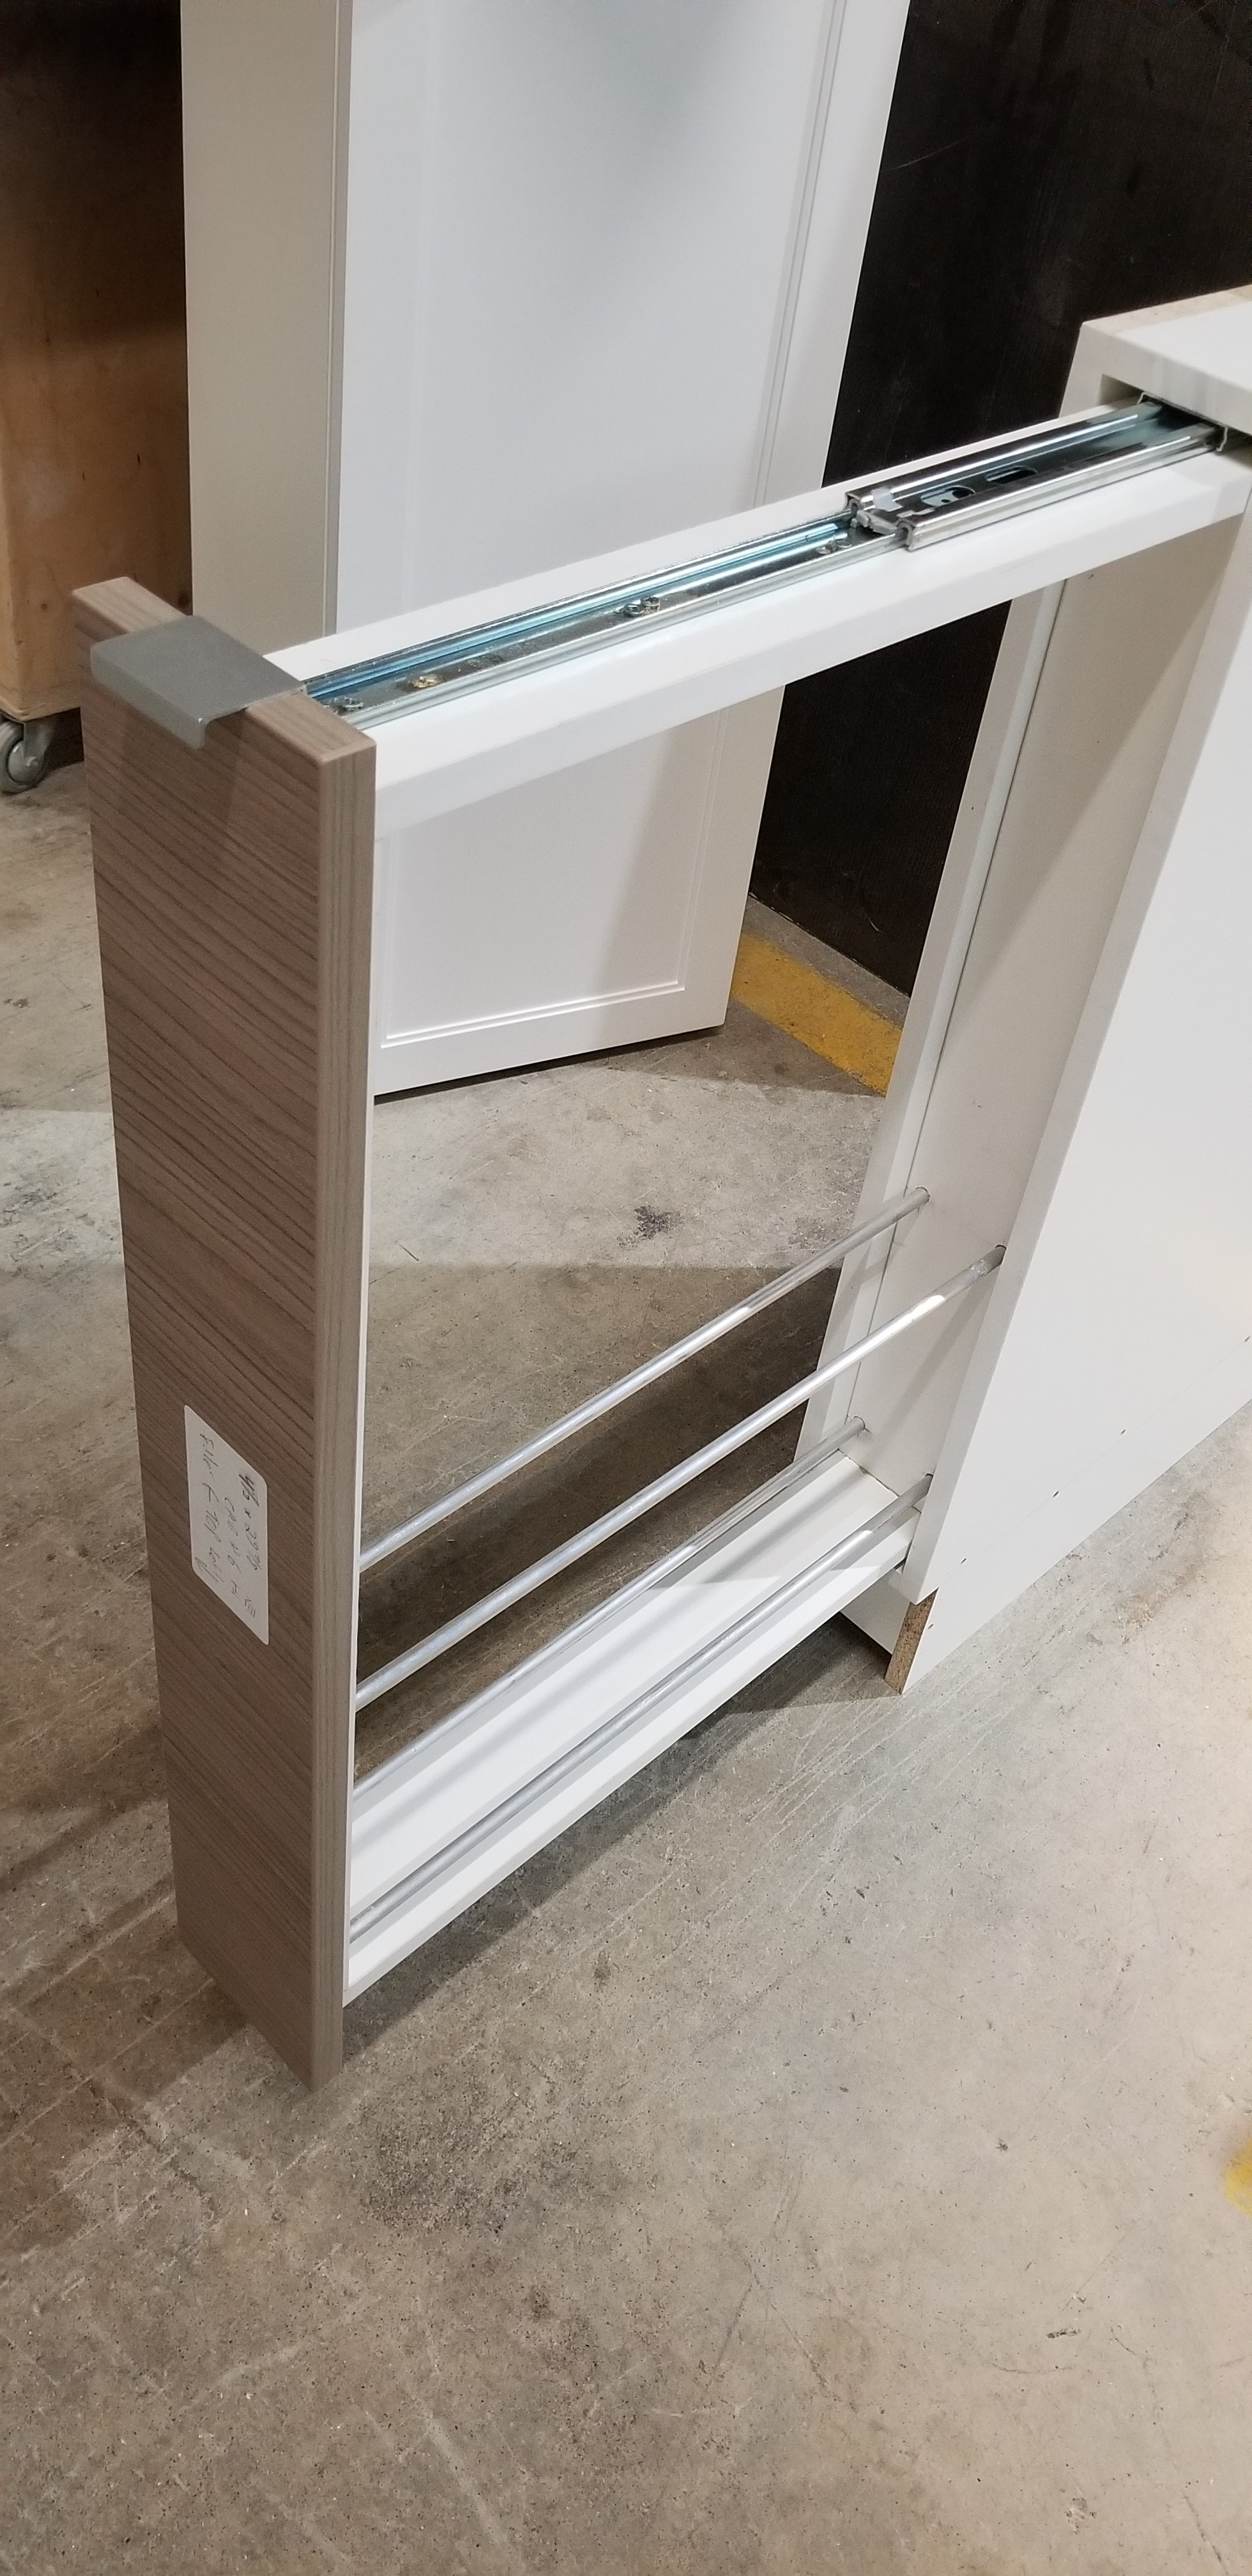 Cutting board pull out rack